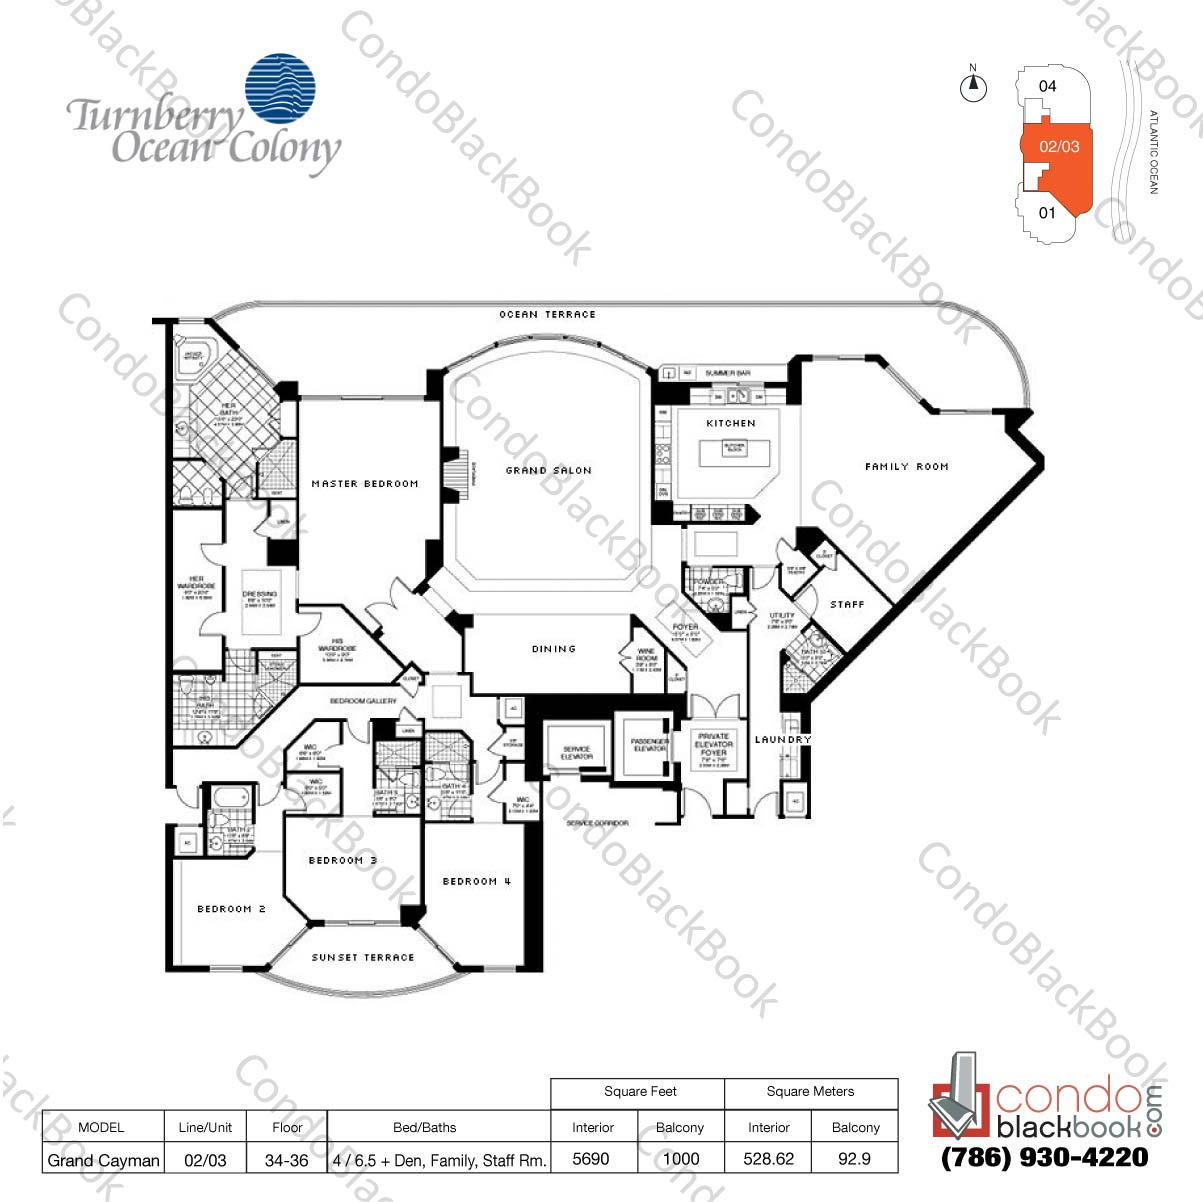 Floor plan for Turnberry Ocean Colony Sunny Isles Beach, model Grand Cayman, line 02/03, 4 / 6.5+ Den, Family Rm., Staff Rm. bedrooms, 5690 sq ft